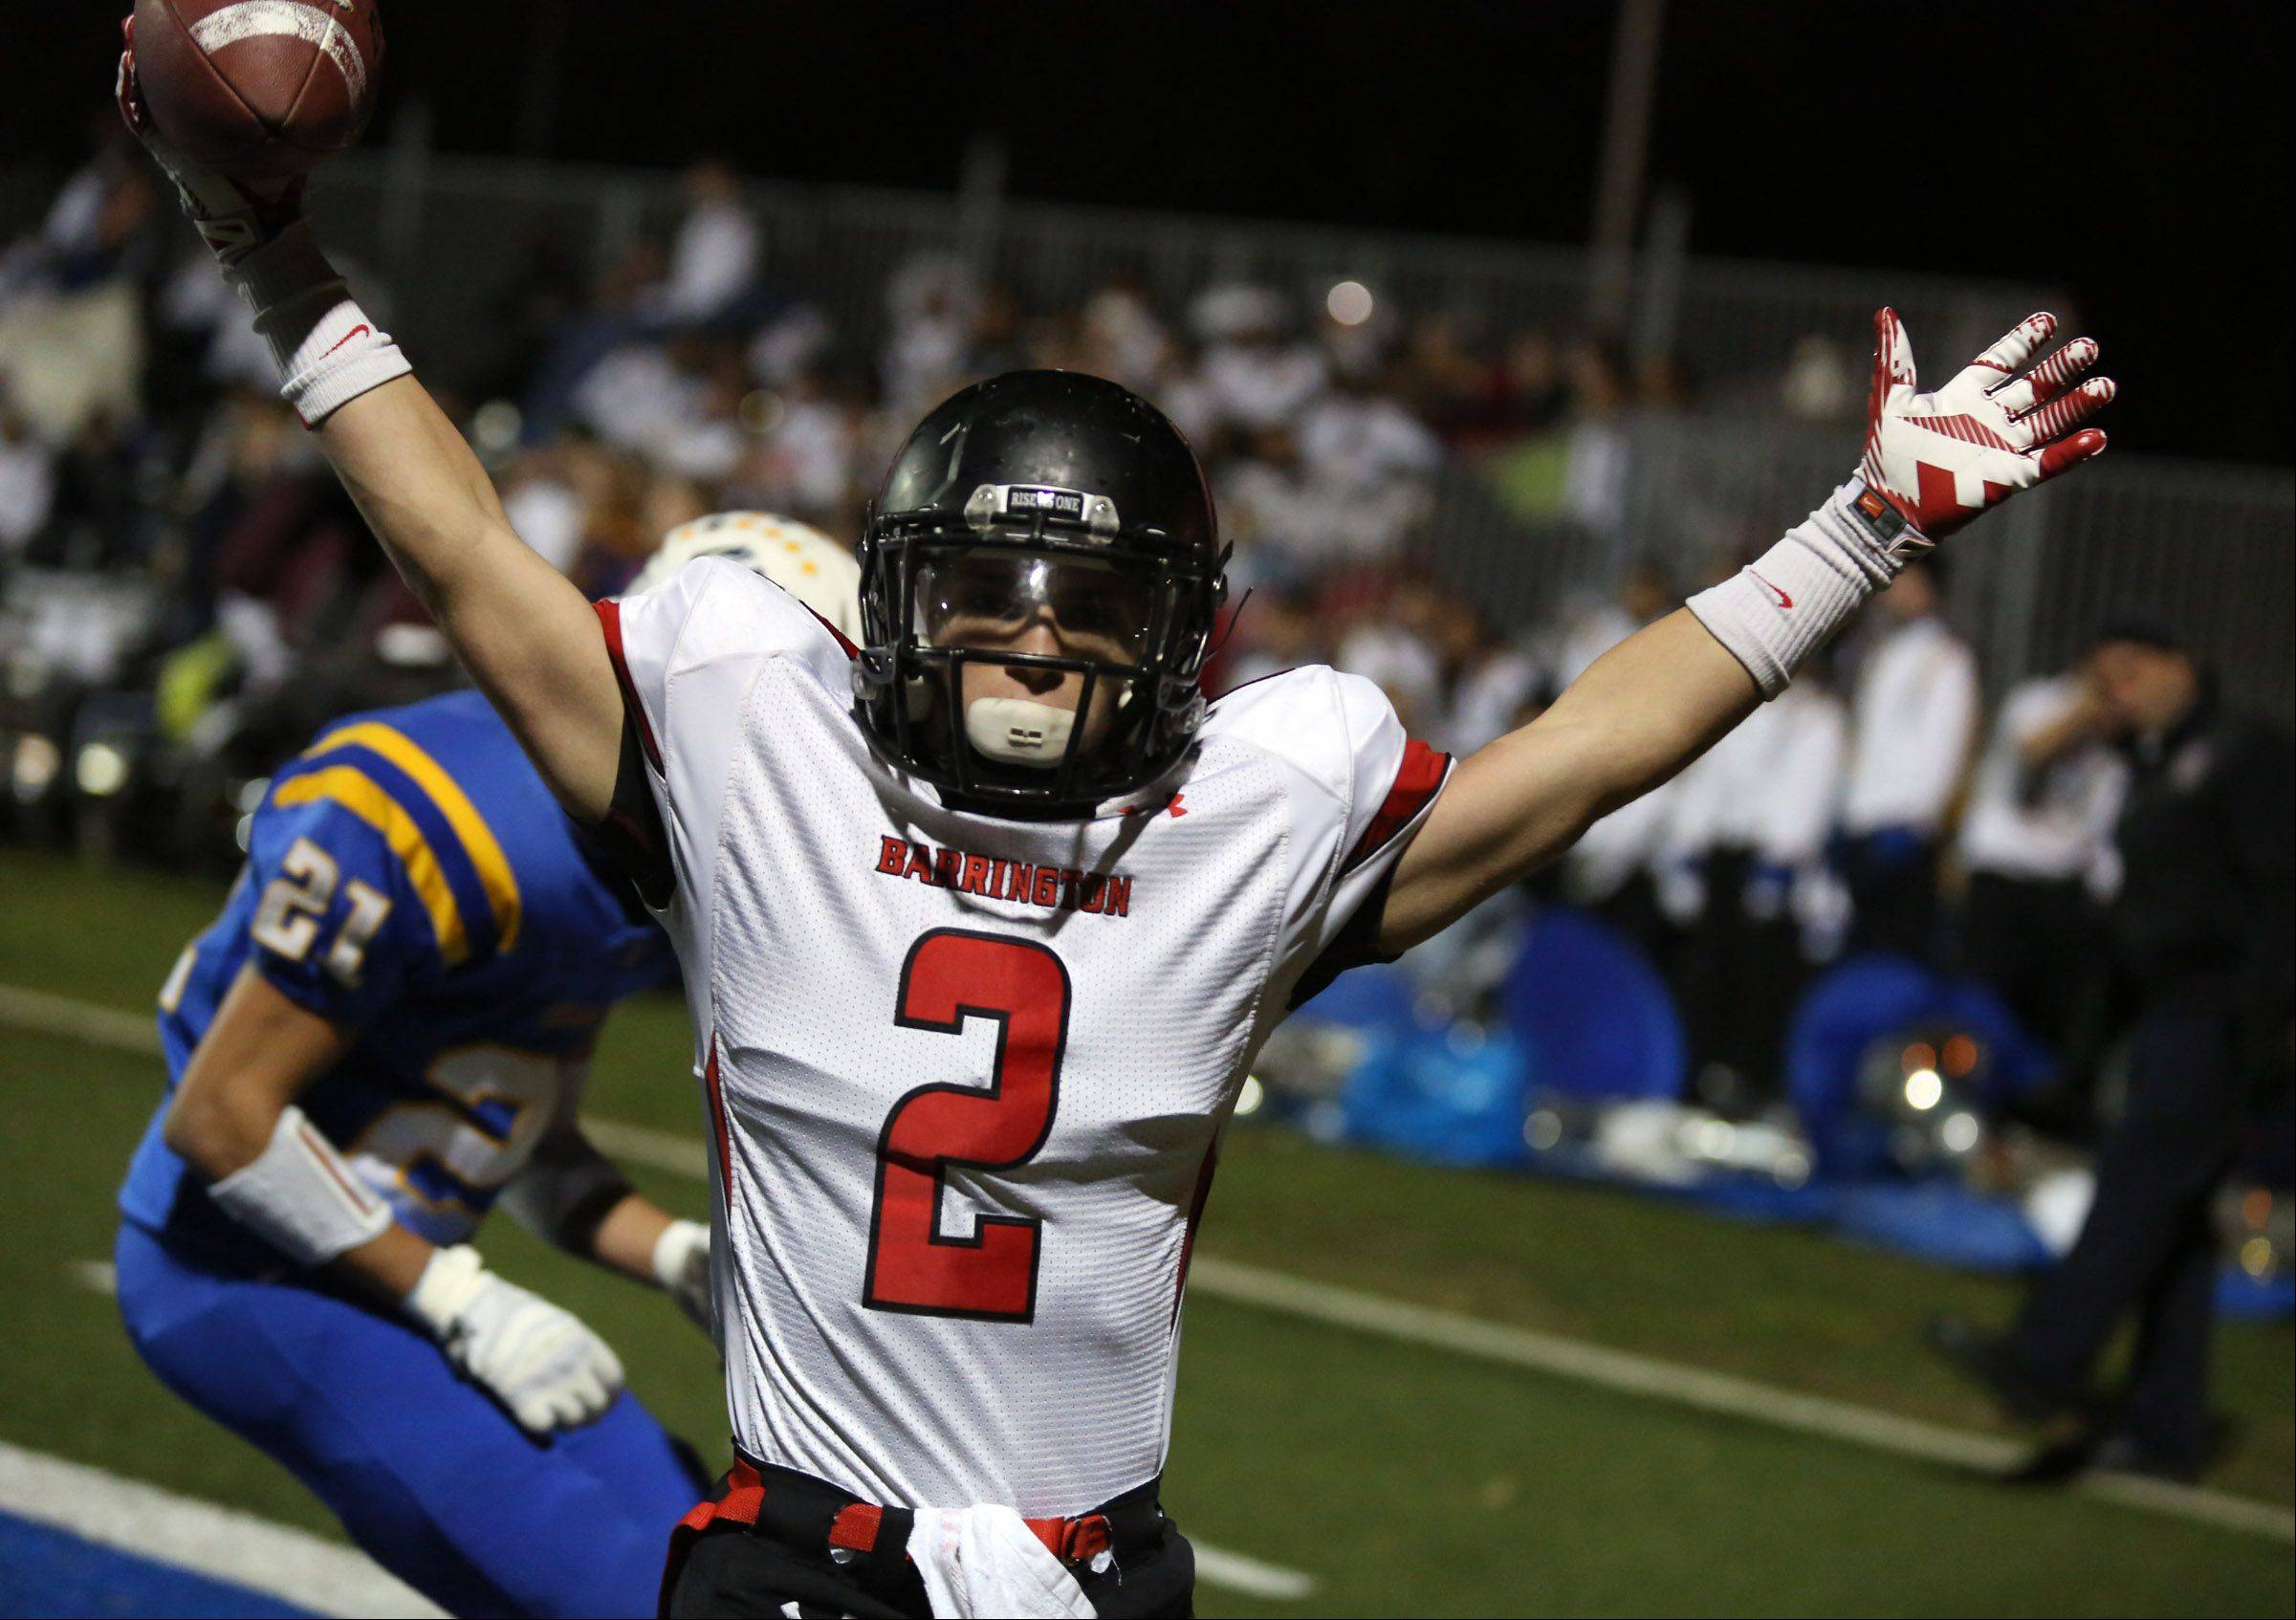 Barrington wide receiver Matt Moran celebrates scoring the game-winning touchdown Saturday in the Broncos' 21-13 Class 8A playoff win over Warren. Barrington hosts Stevenson Saturday in the quarterfinals.